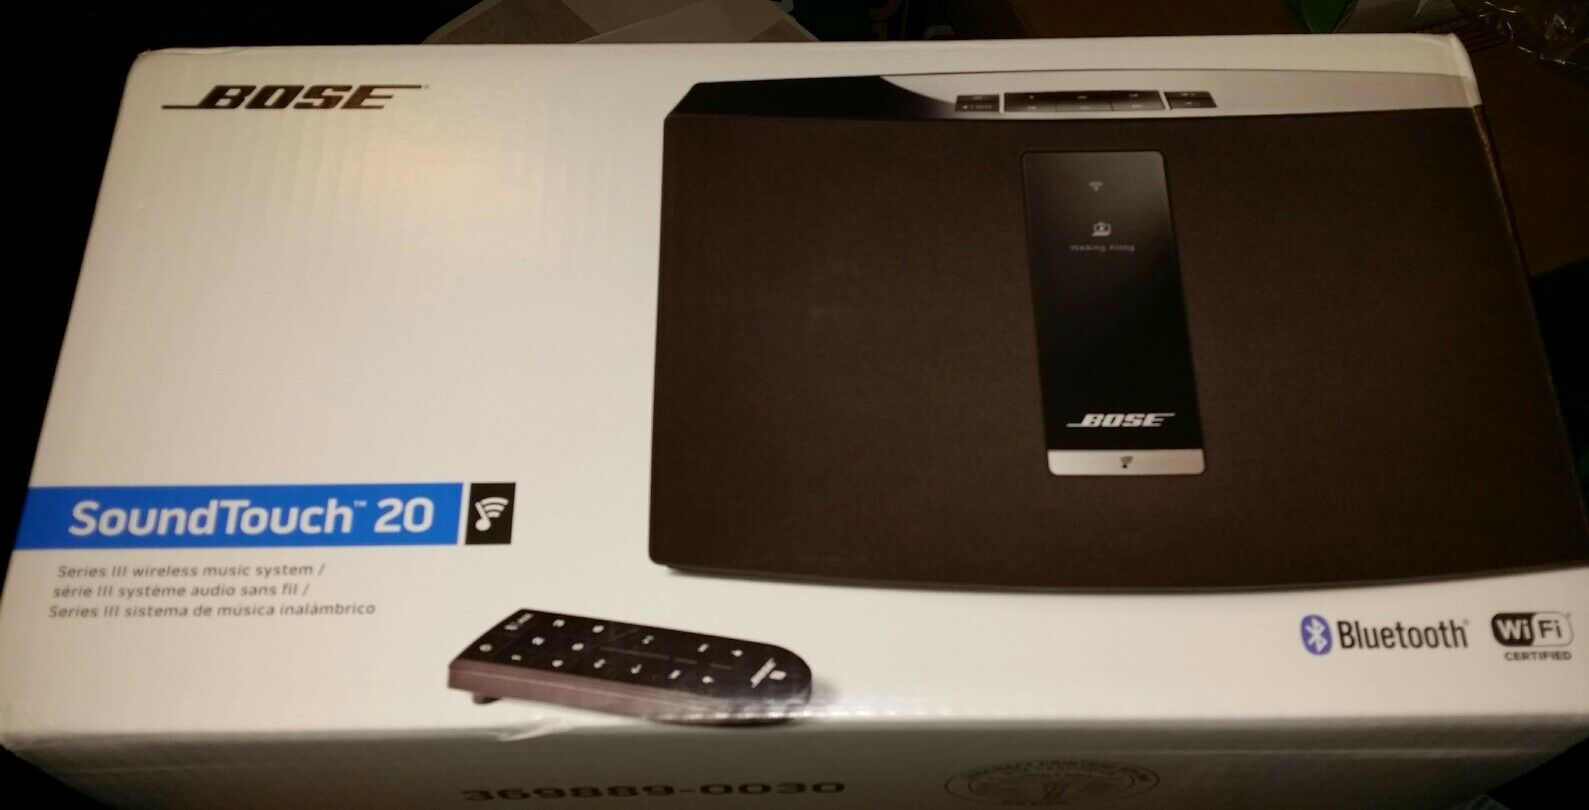 bose soundtouch 20 series iii wireless bluetooth wi fi. Black Bedroom Furniture Sets. Home Design Ideas